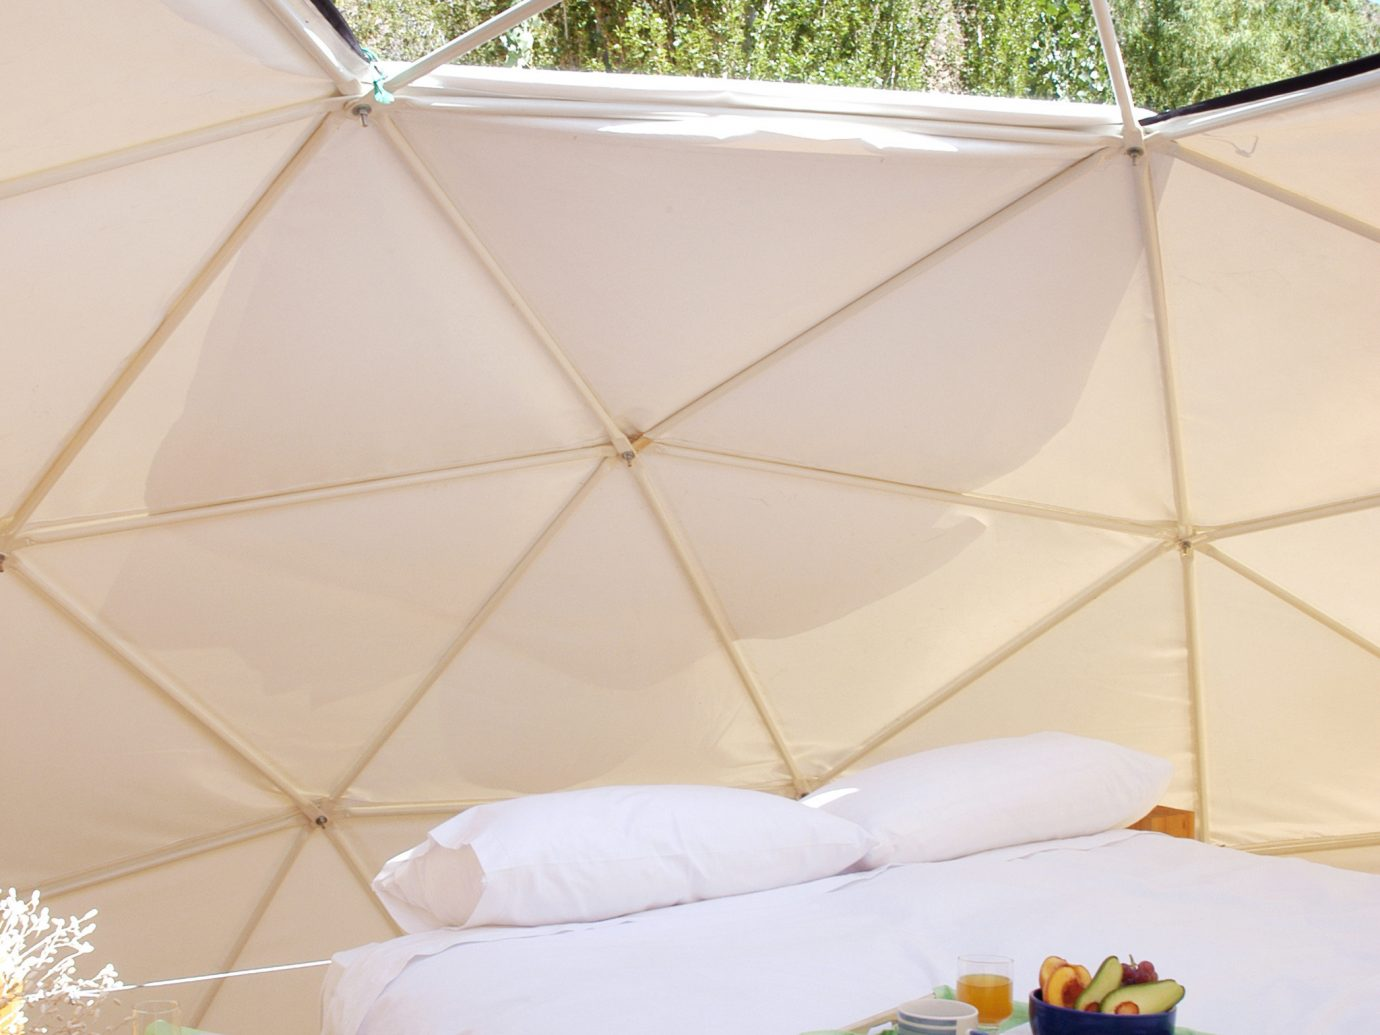 Architecture Bedroom Boutique Eco Hotels Lodge Offbeat Romance Rustic Scenic views Suite tree bed property room building furniture cottage tent Villa